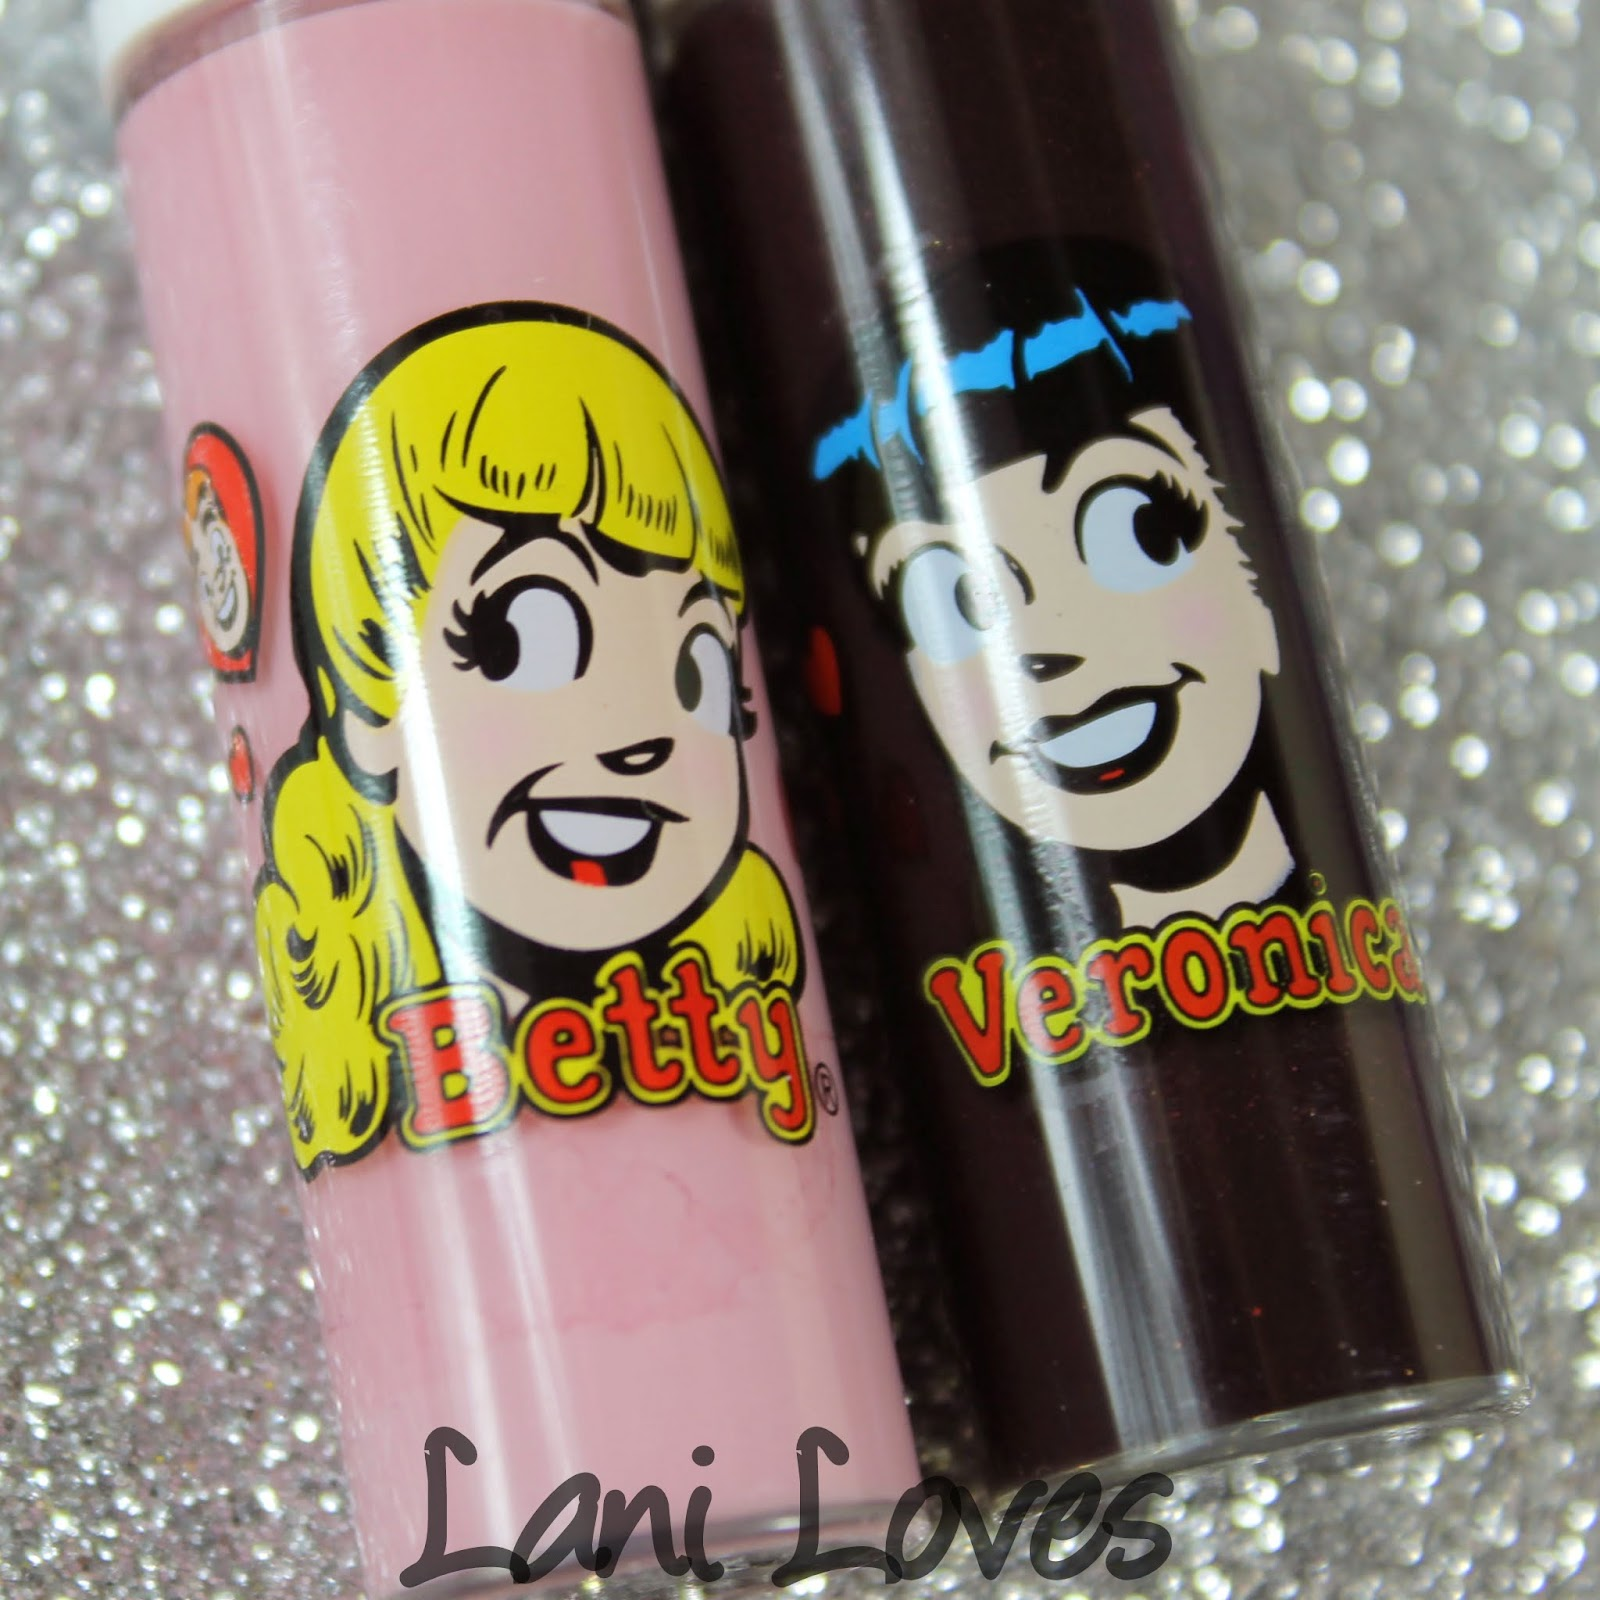 MAC Monday: Archie's Girls - Stay Sweet and Feelin' So Good Lipglass Swatches & Review